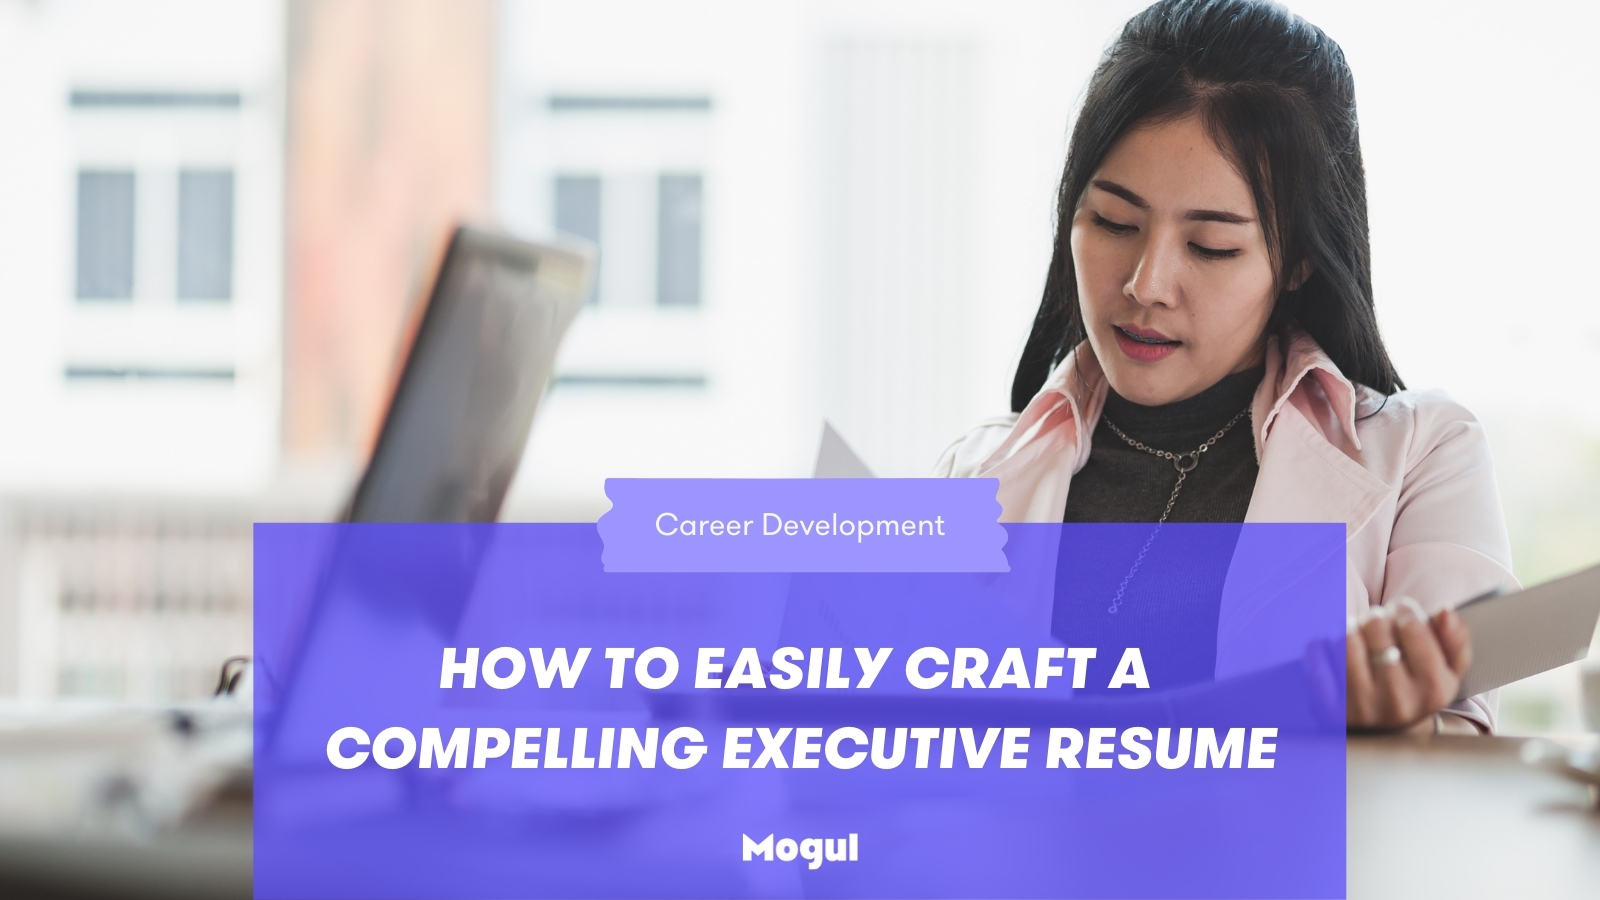 How to easily craft a compelling executive resume